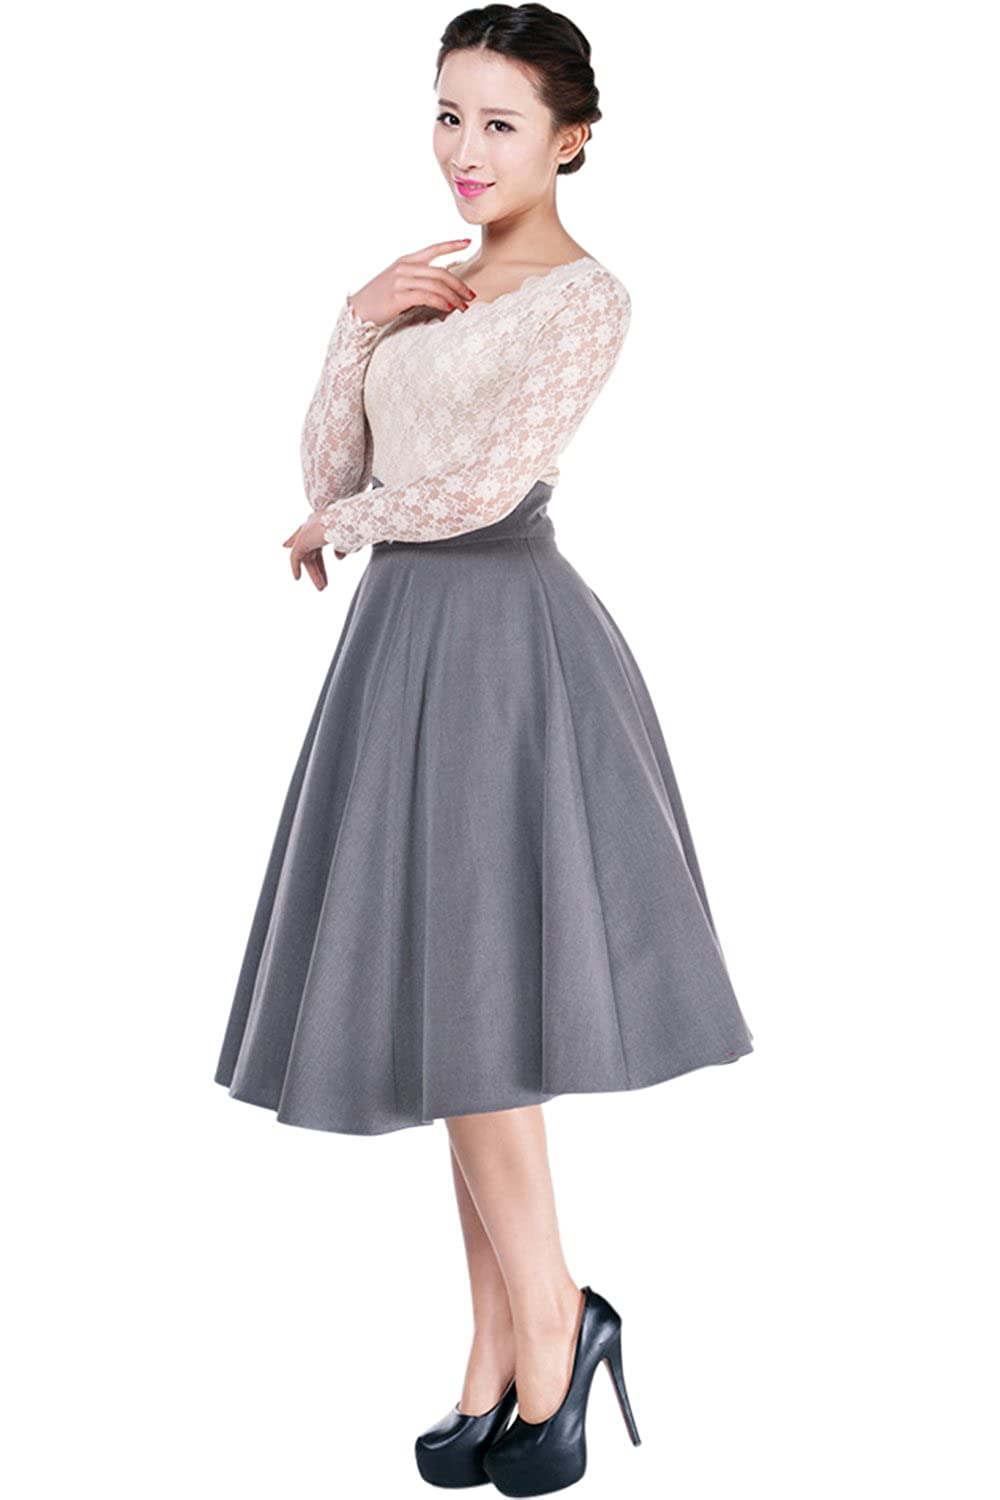 Plus Womens Pinup Lovely Office Lady High Waist Swing Full Circle Skirt 61370